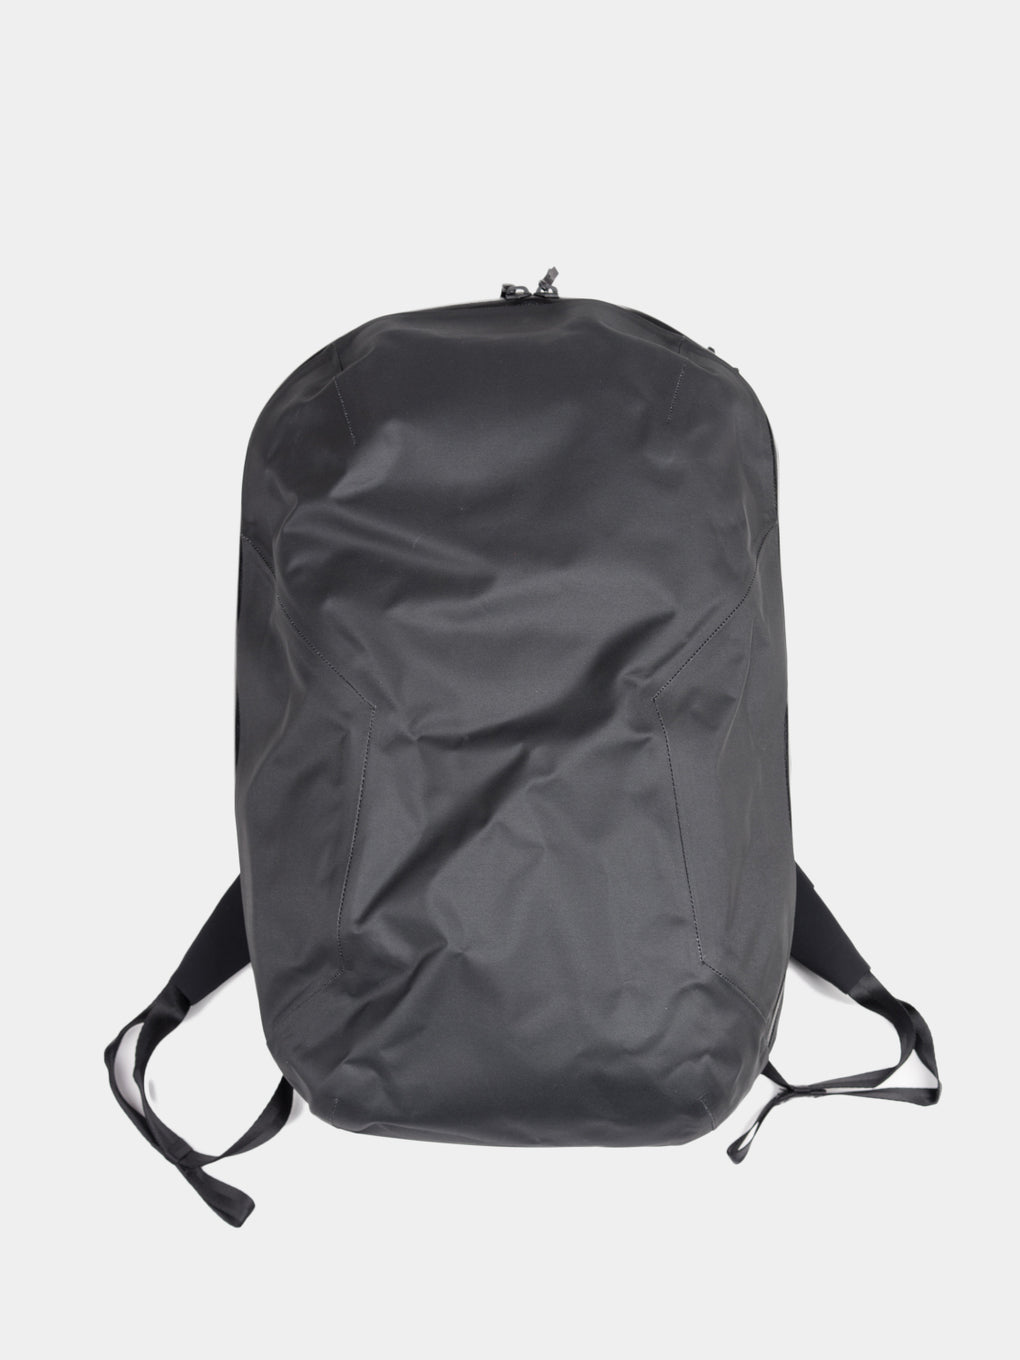 Nomin Pack Black